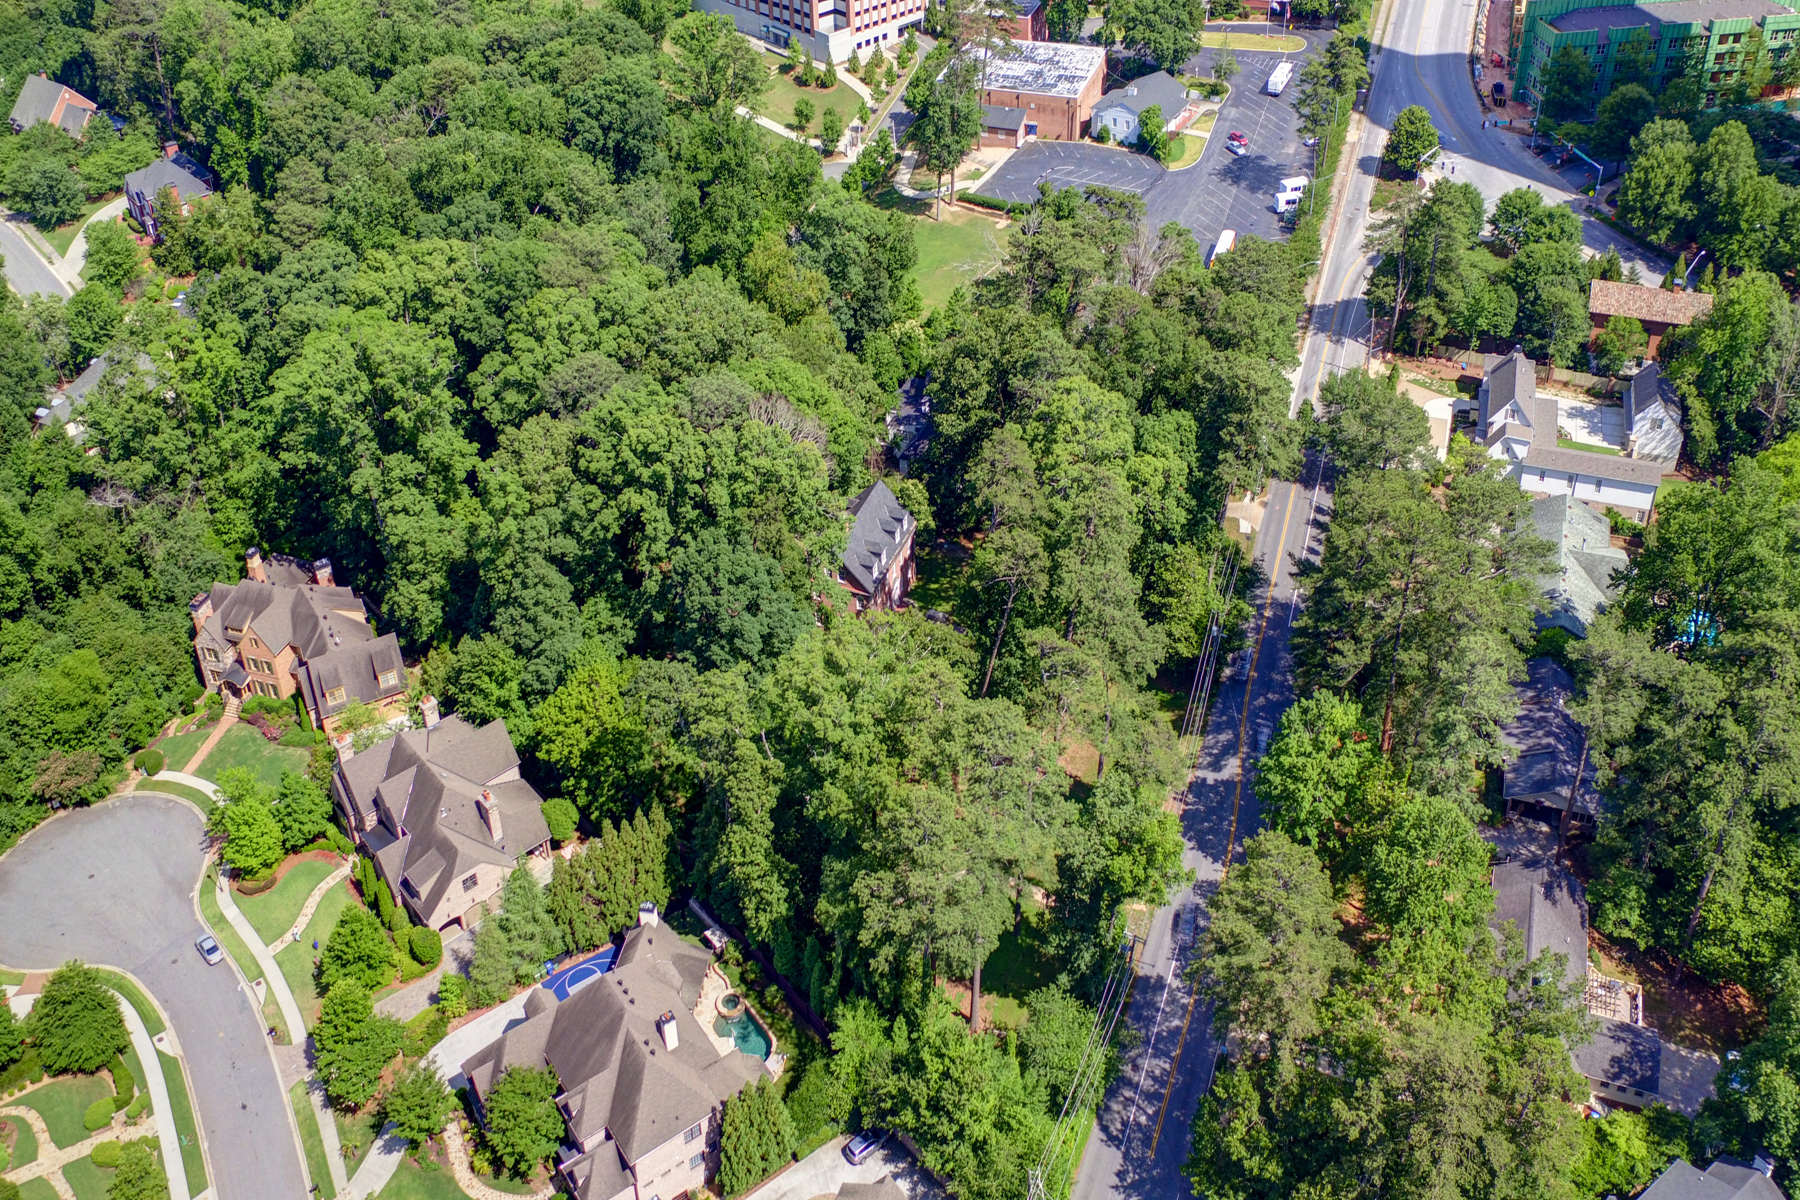 Terreno por un Venta en 3.3 Acre Buckhead Estate 3745 Wieuca Road Atlanta, Georgia 30342 Estados Unidos